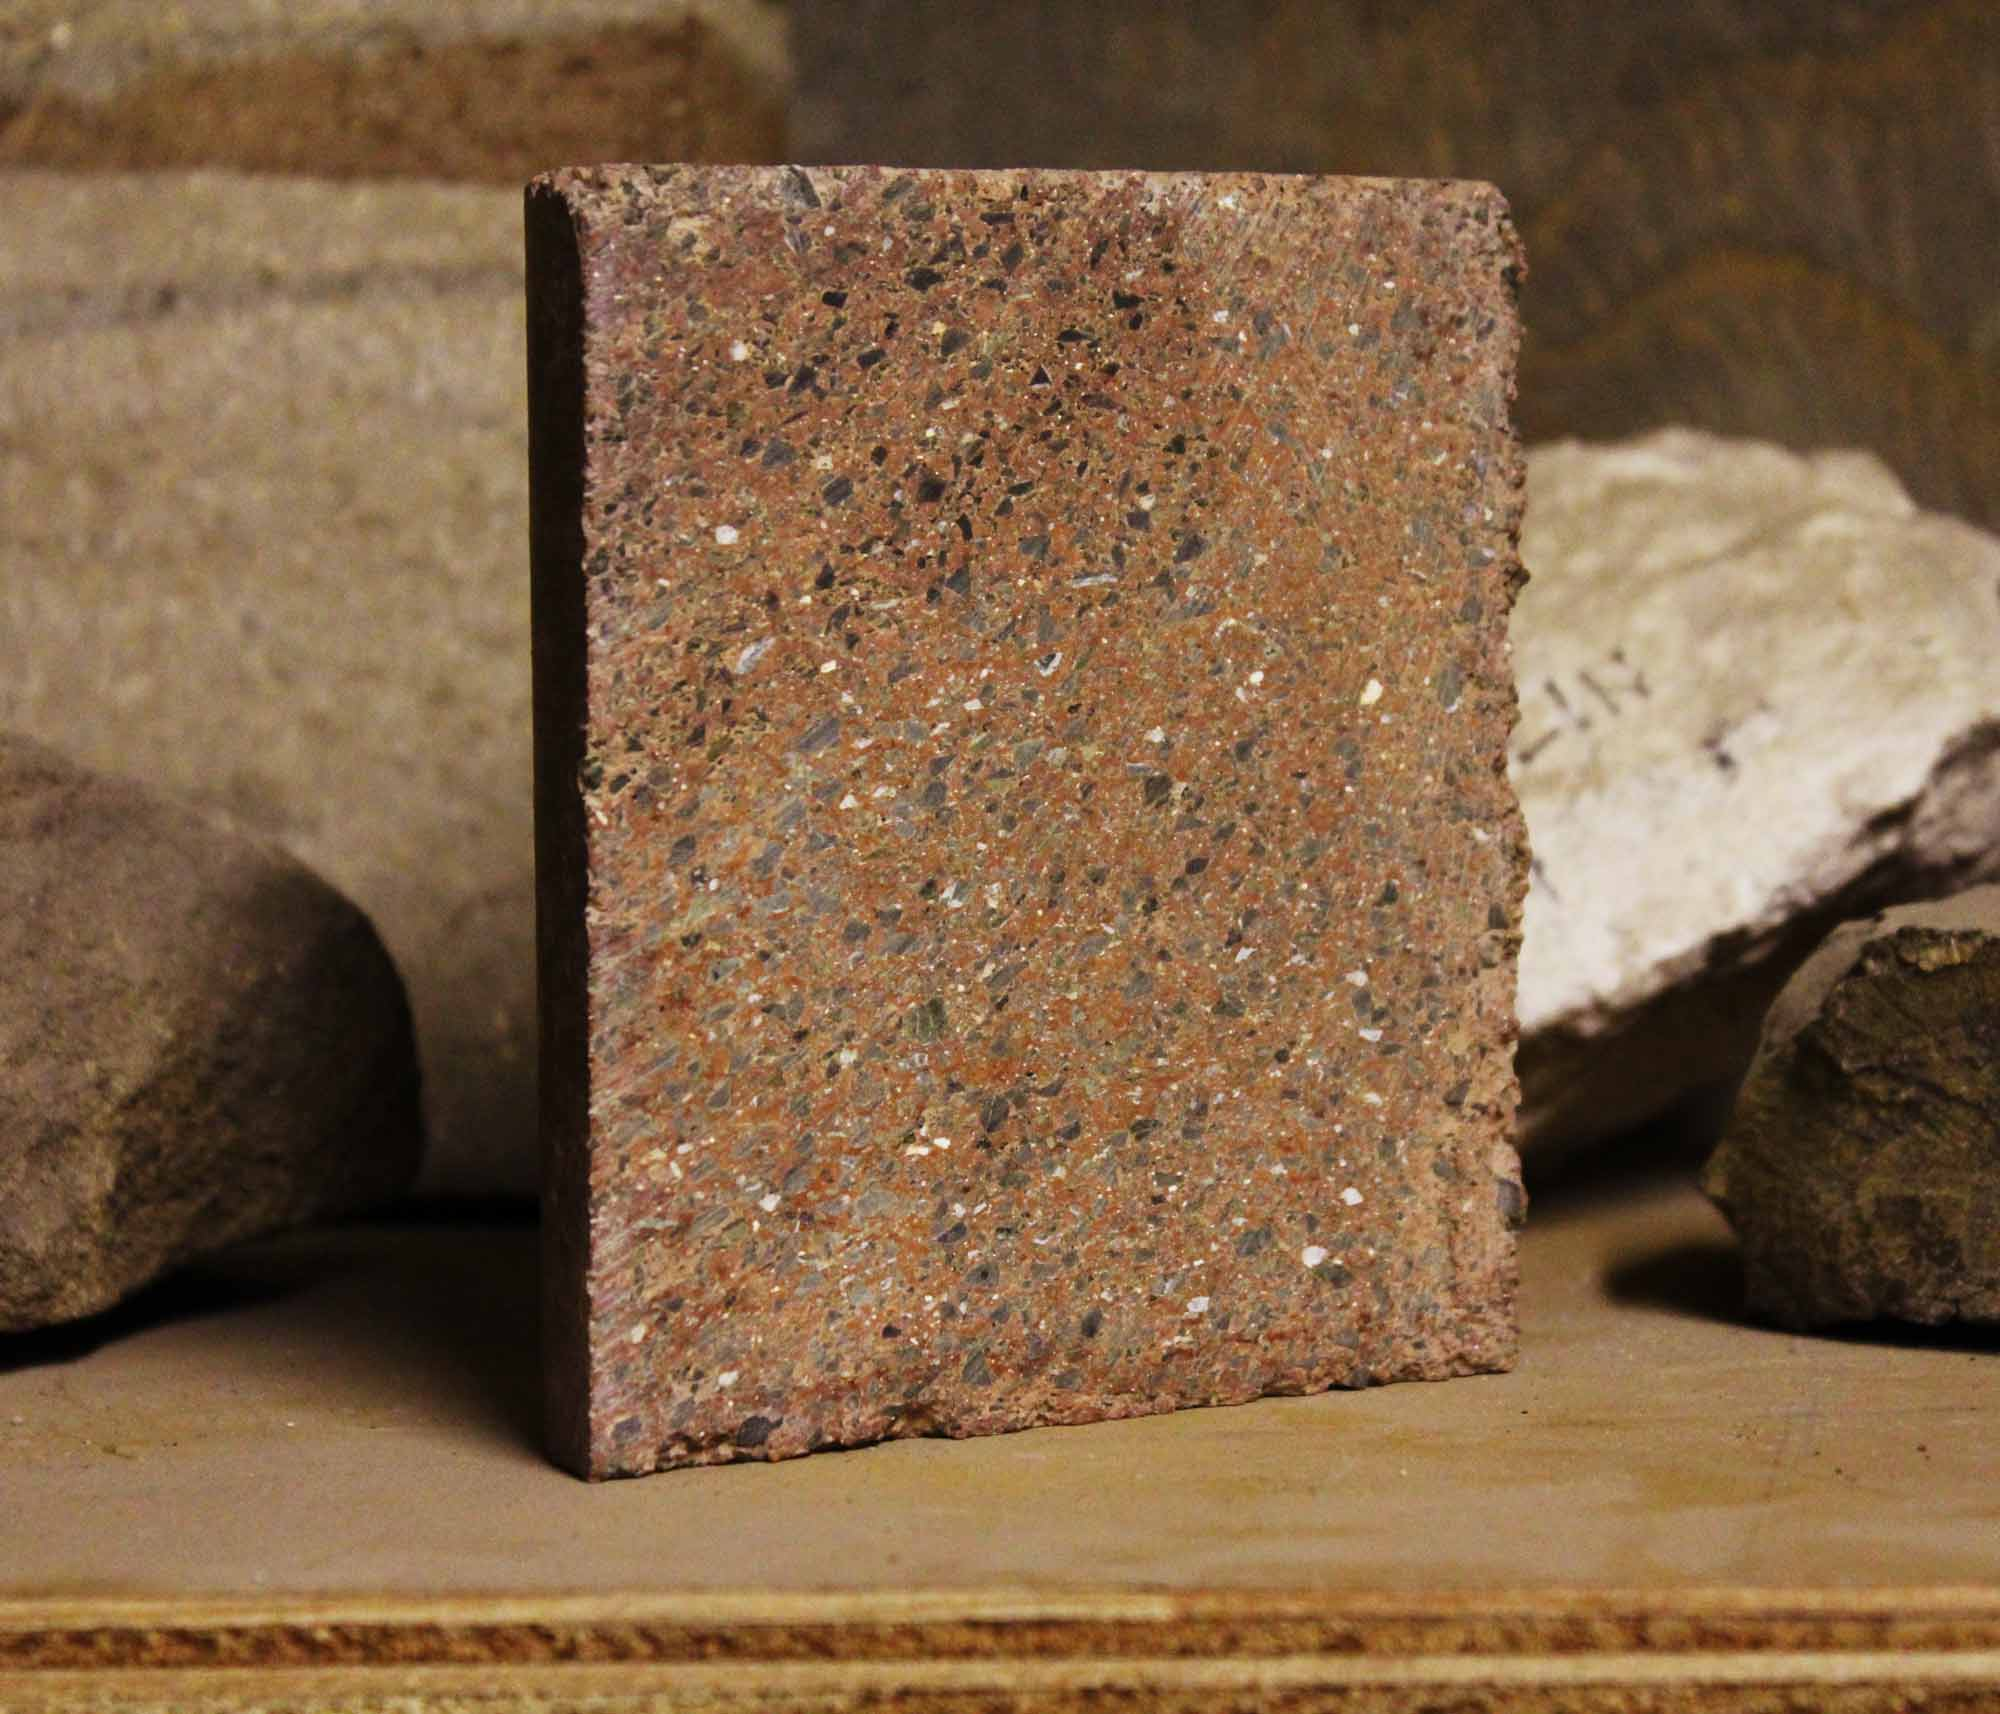 Saw-Cut Half Cylinder Test Sample of Watershed Materials' New Geopolymer Masonry